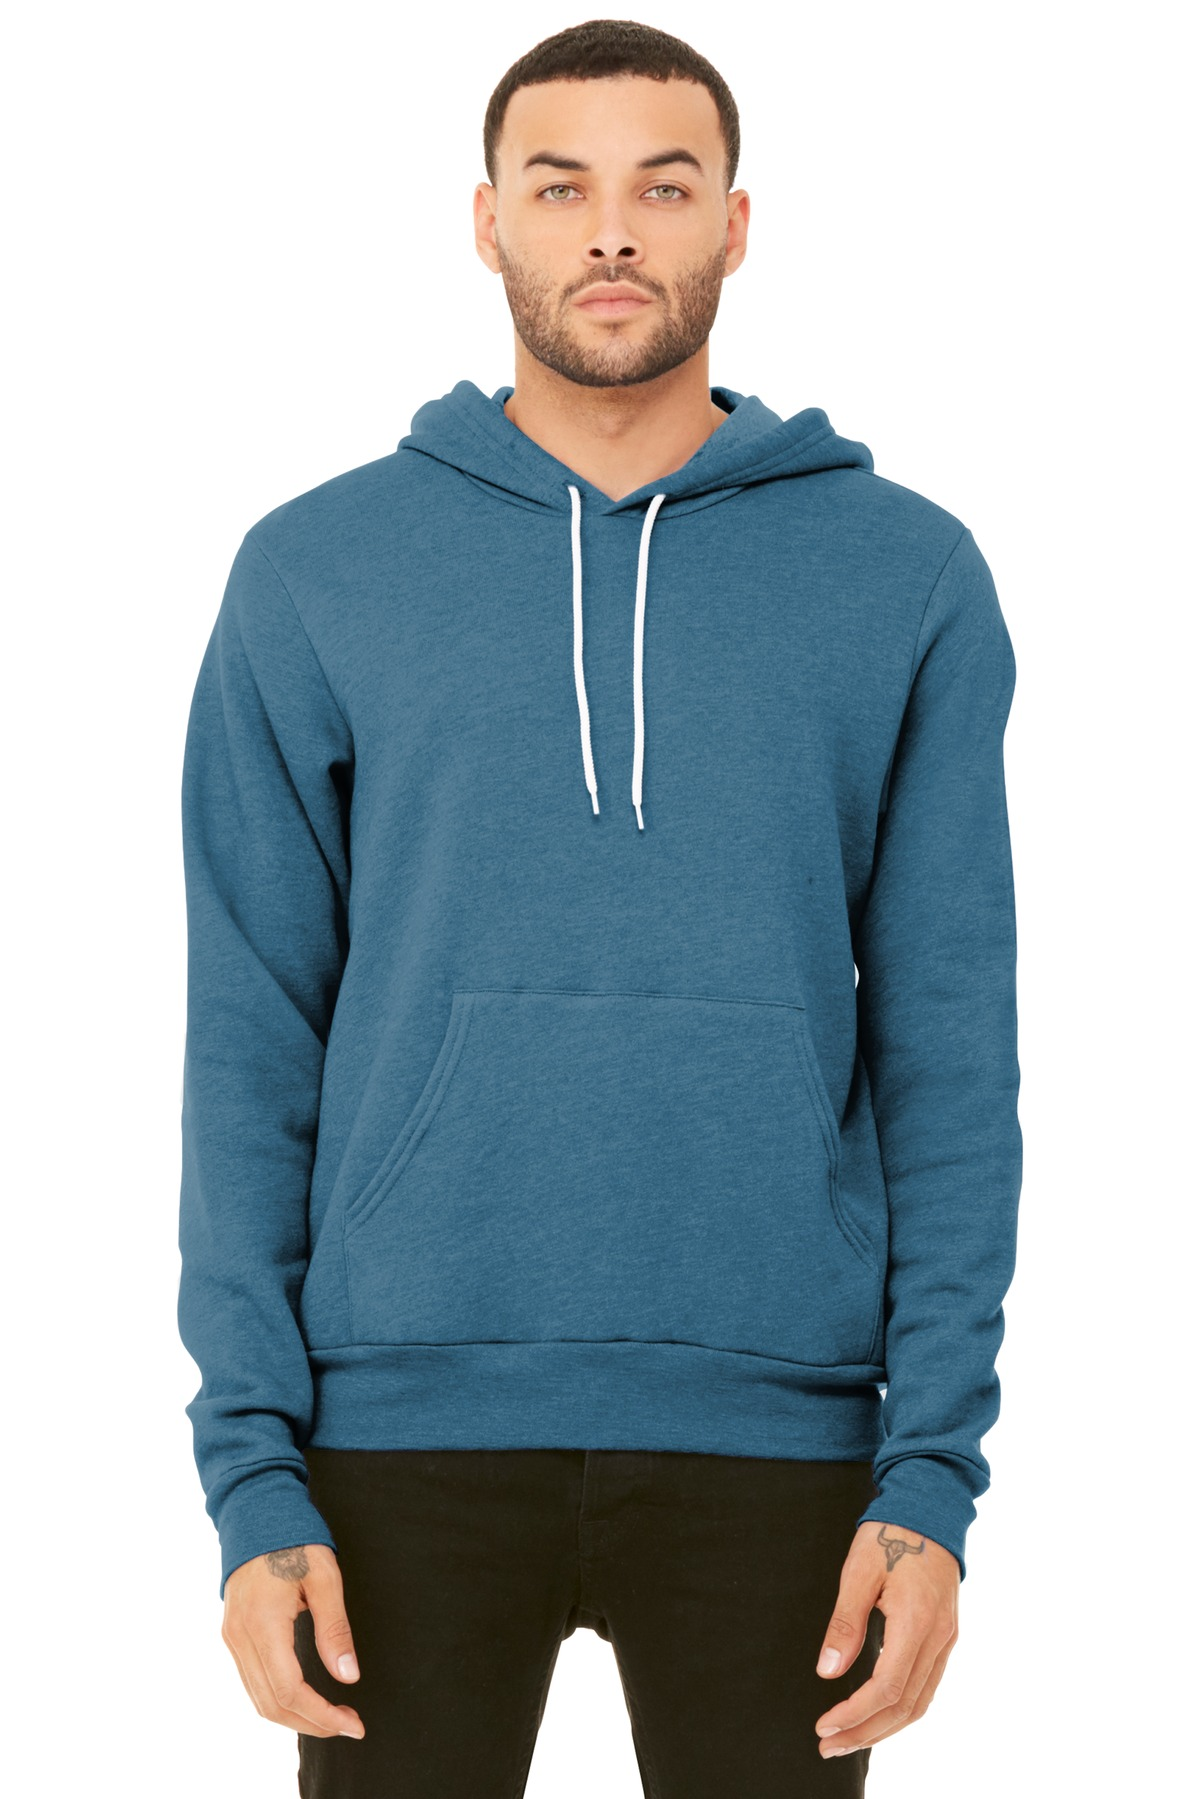 BELLA+CANVAS  ®  Unisex Sponge Fleece Pullover Hoodie. BC3719 - Heather Deep Teal